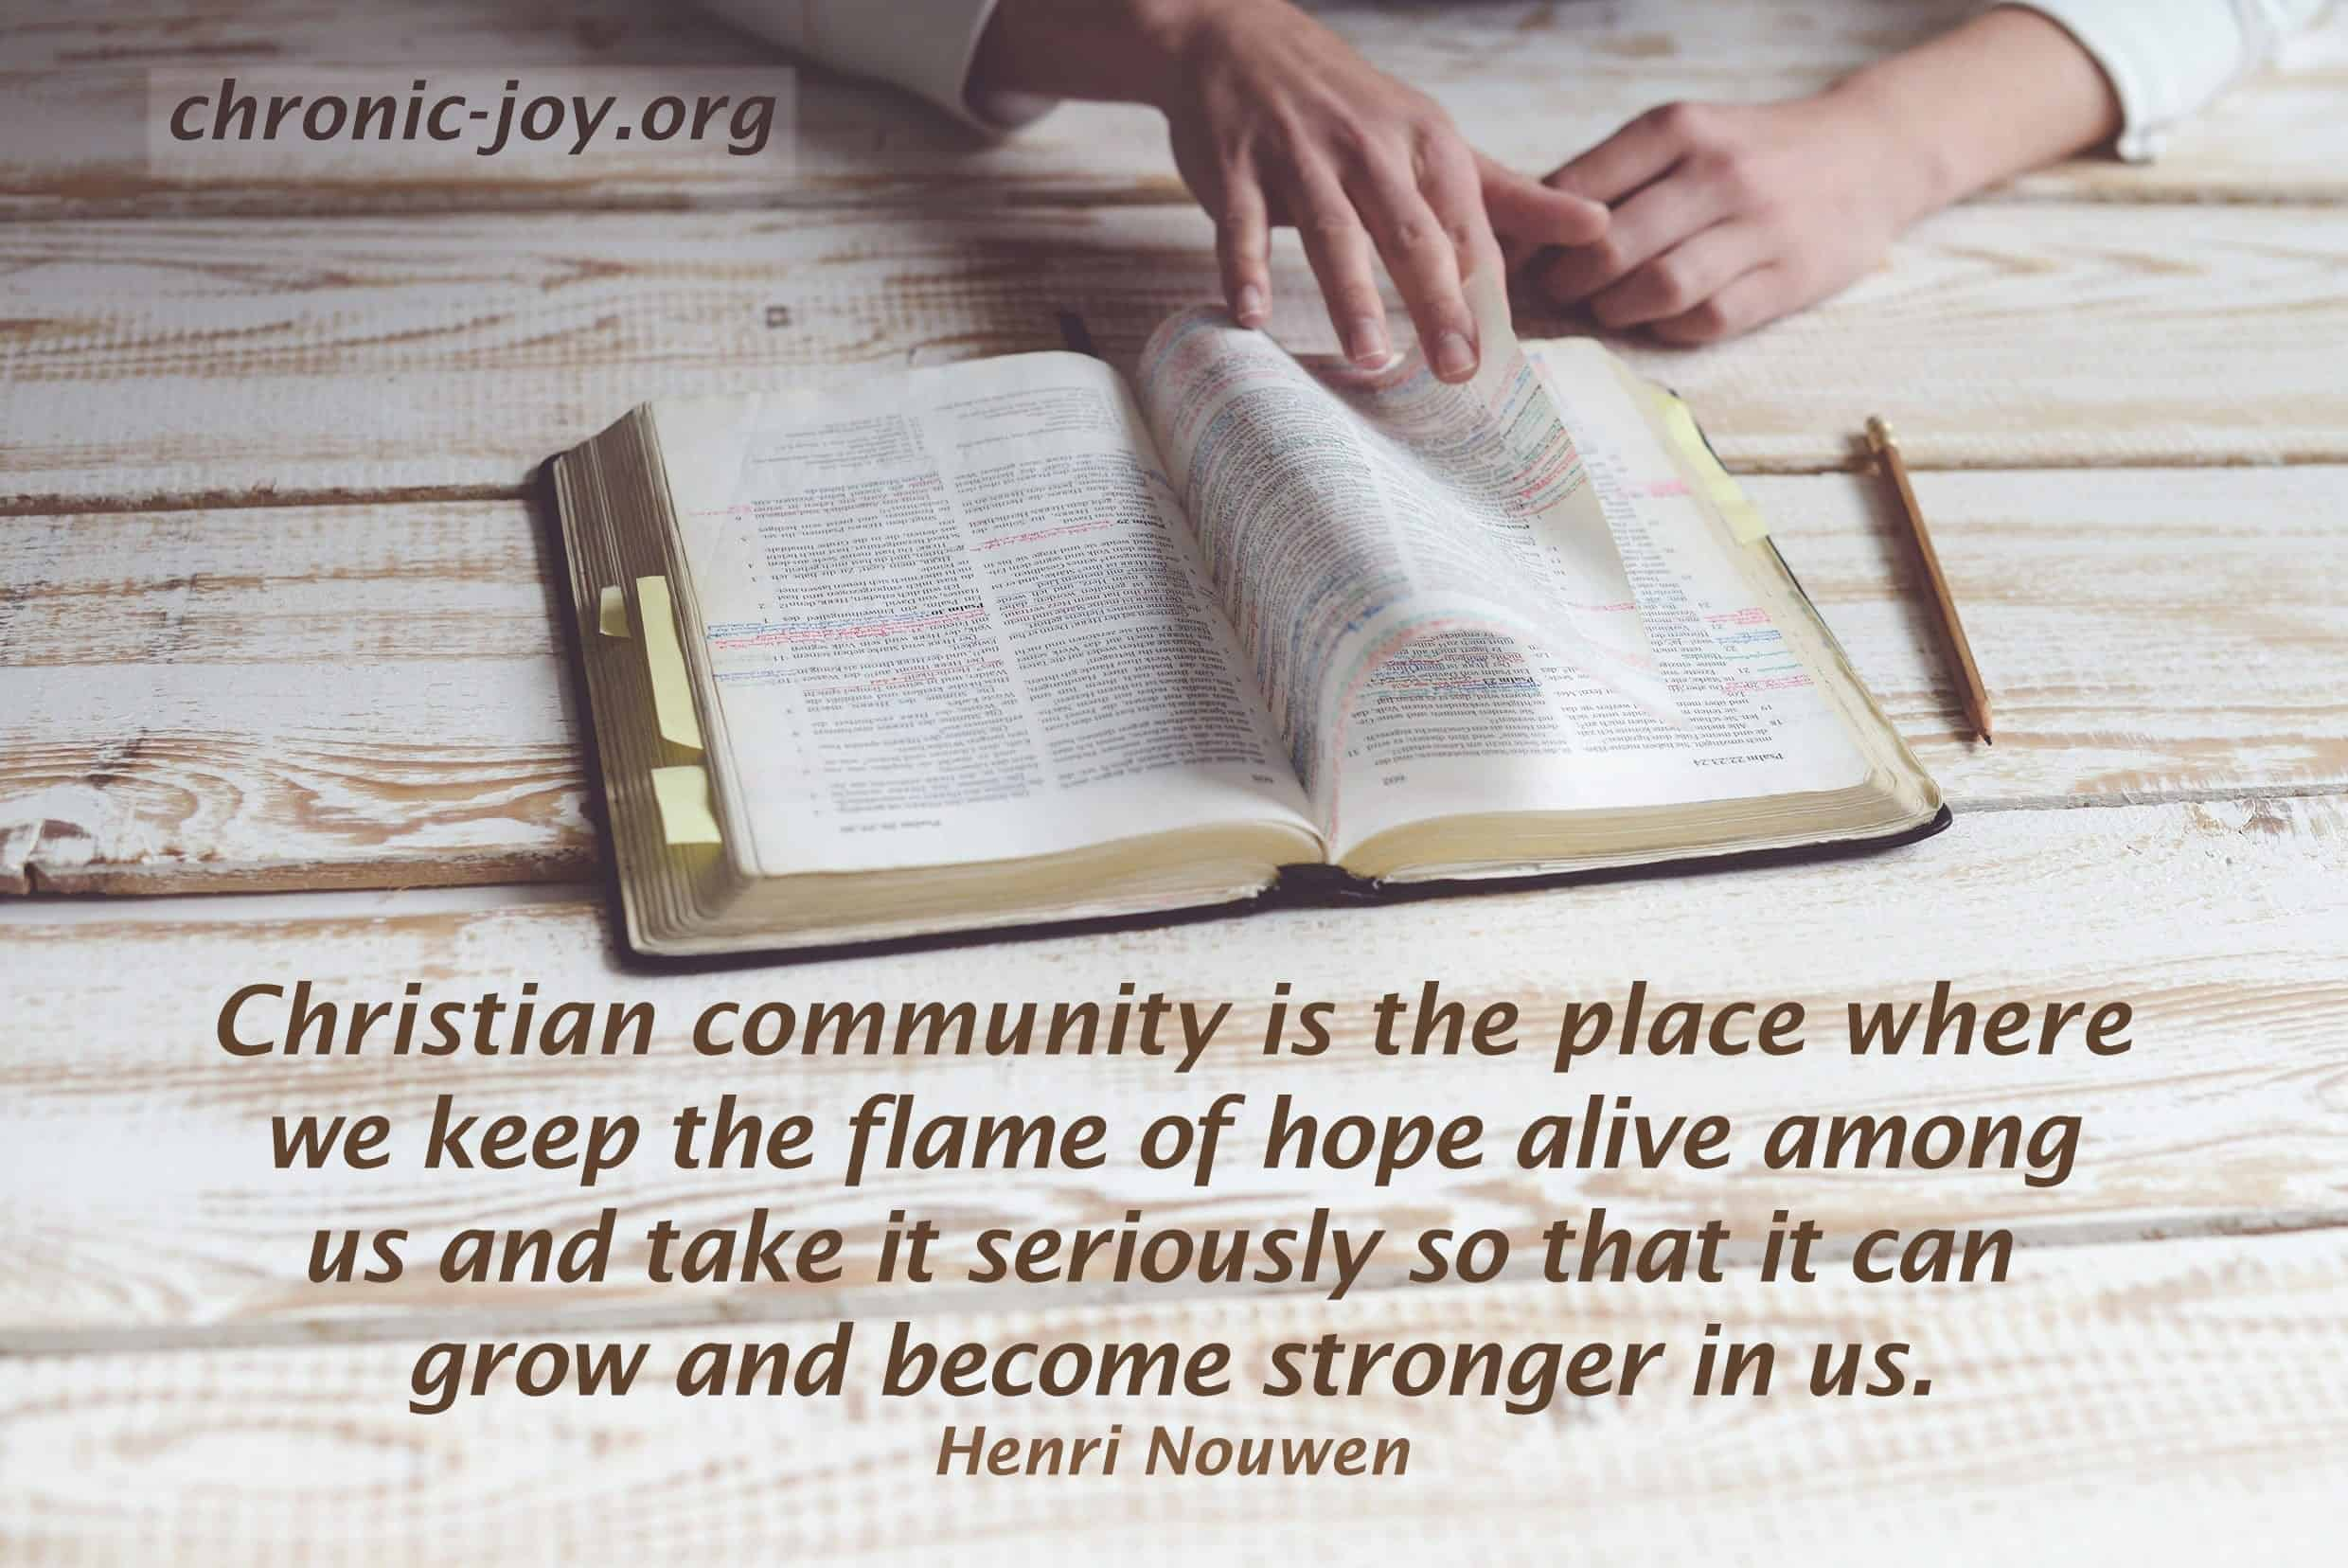 Christian community is the place where we keep the flame of hope alive...